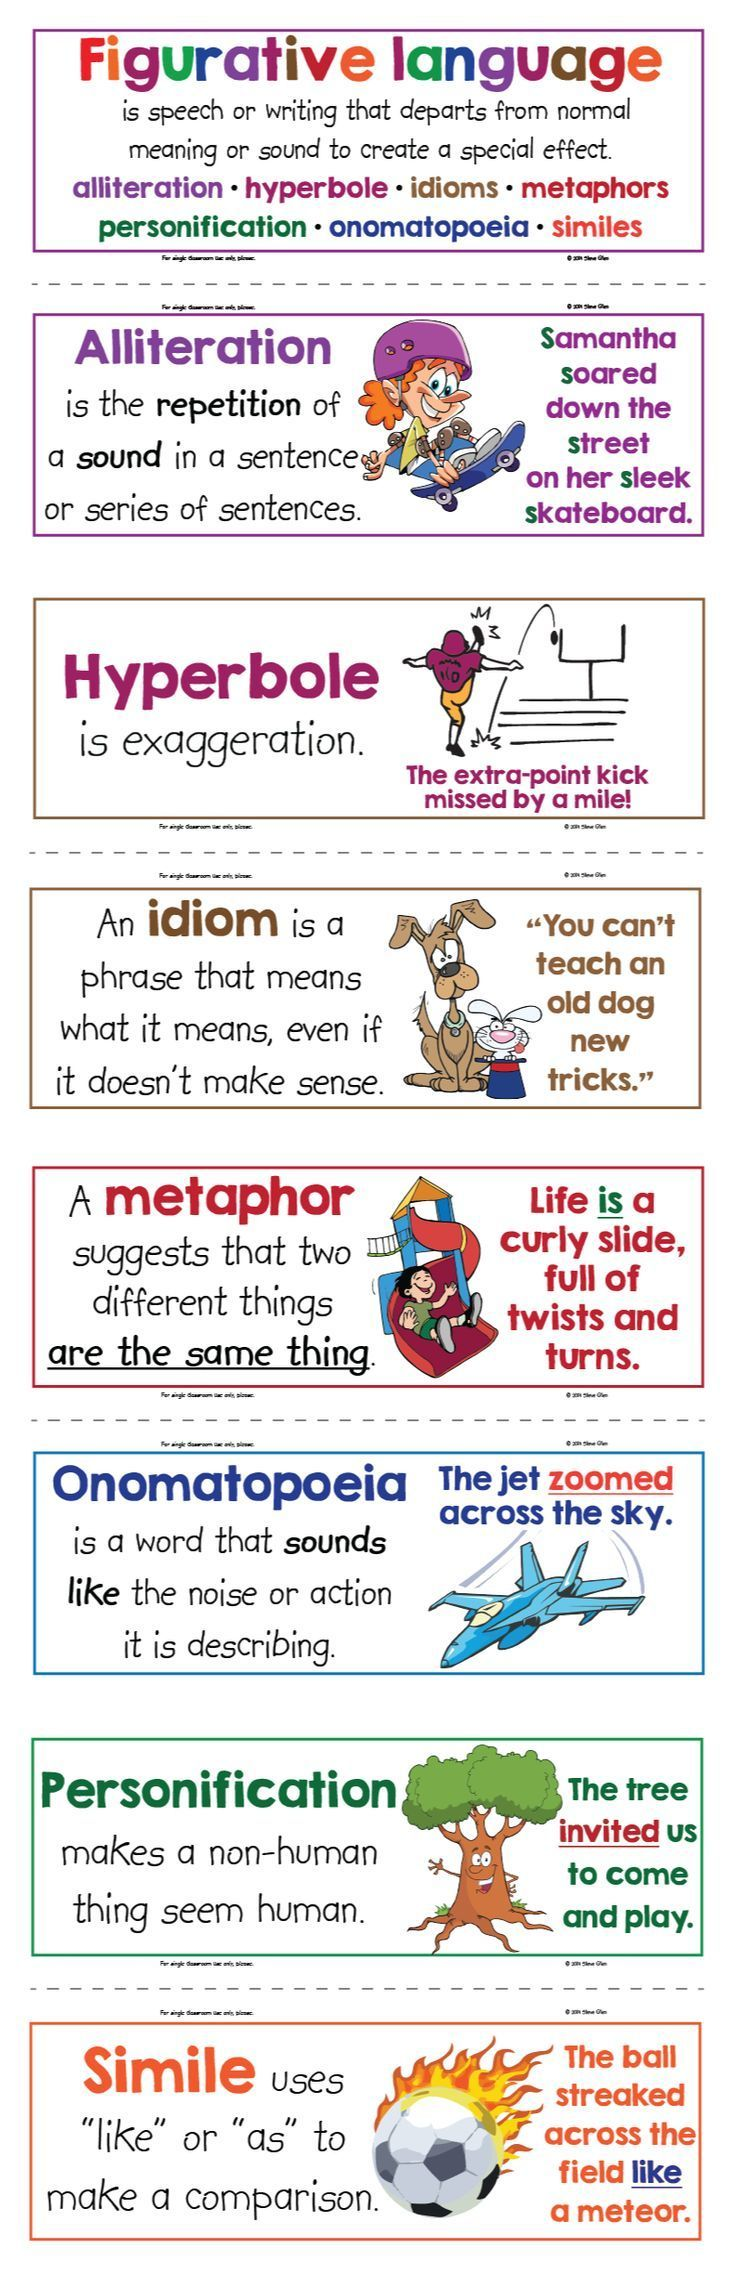 best ideas about simile similes and metaphors 17 best ideas about simile similes and metaphors english idioms and idioms